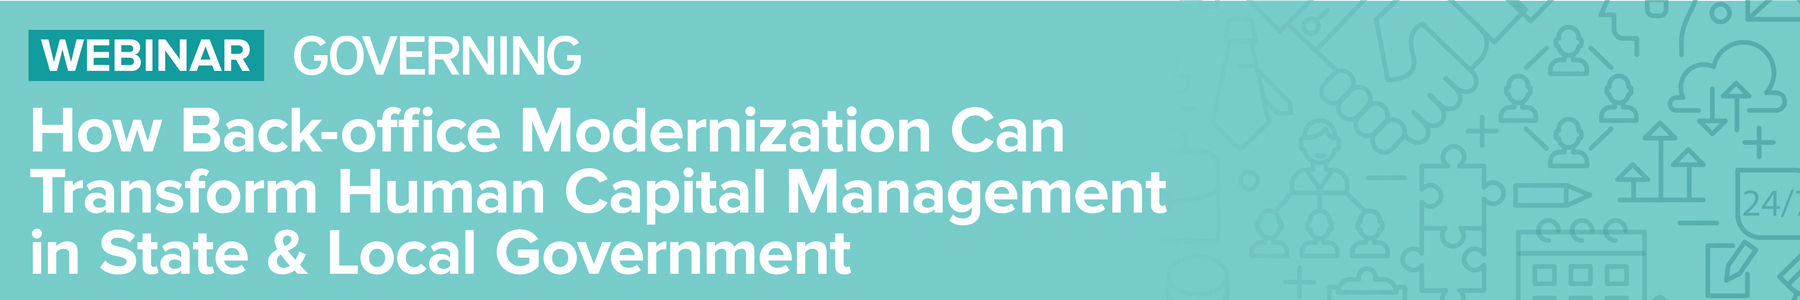 How Back-Office Modernization Can Transform Human Capital Management in State & Local Government